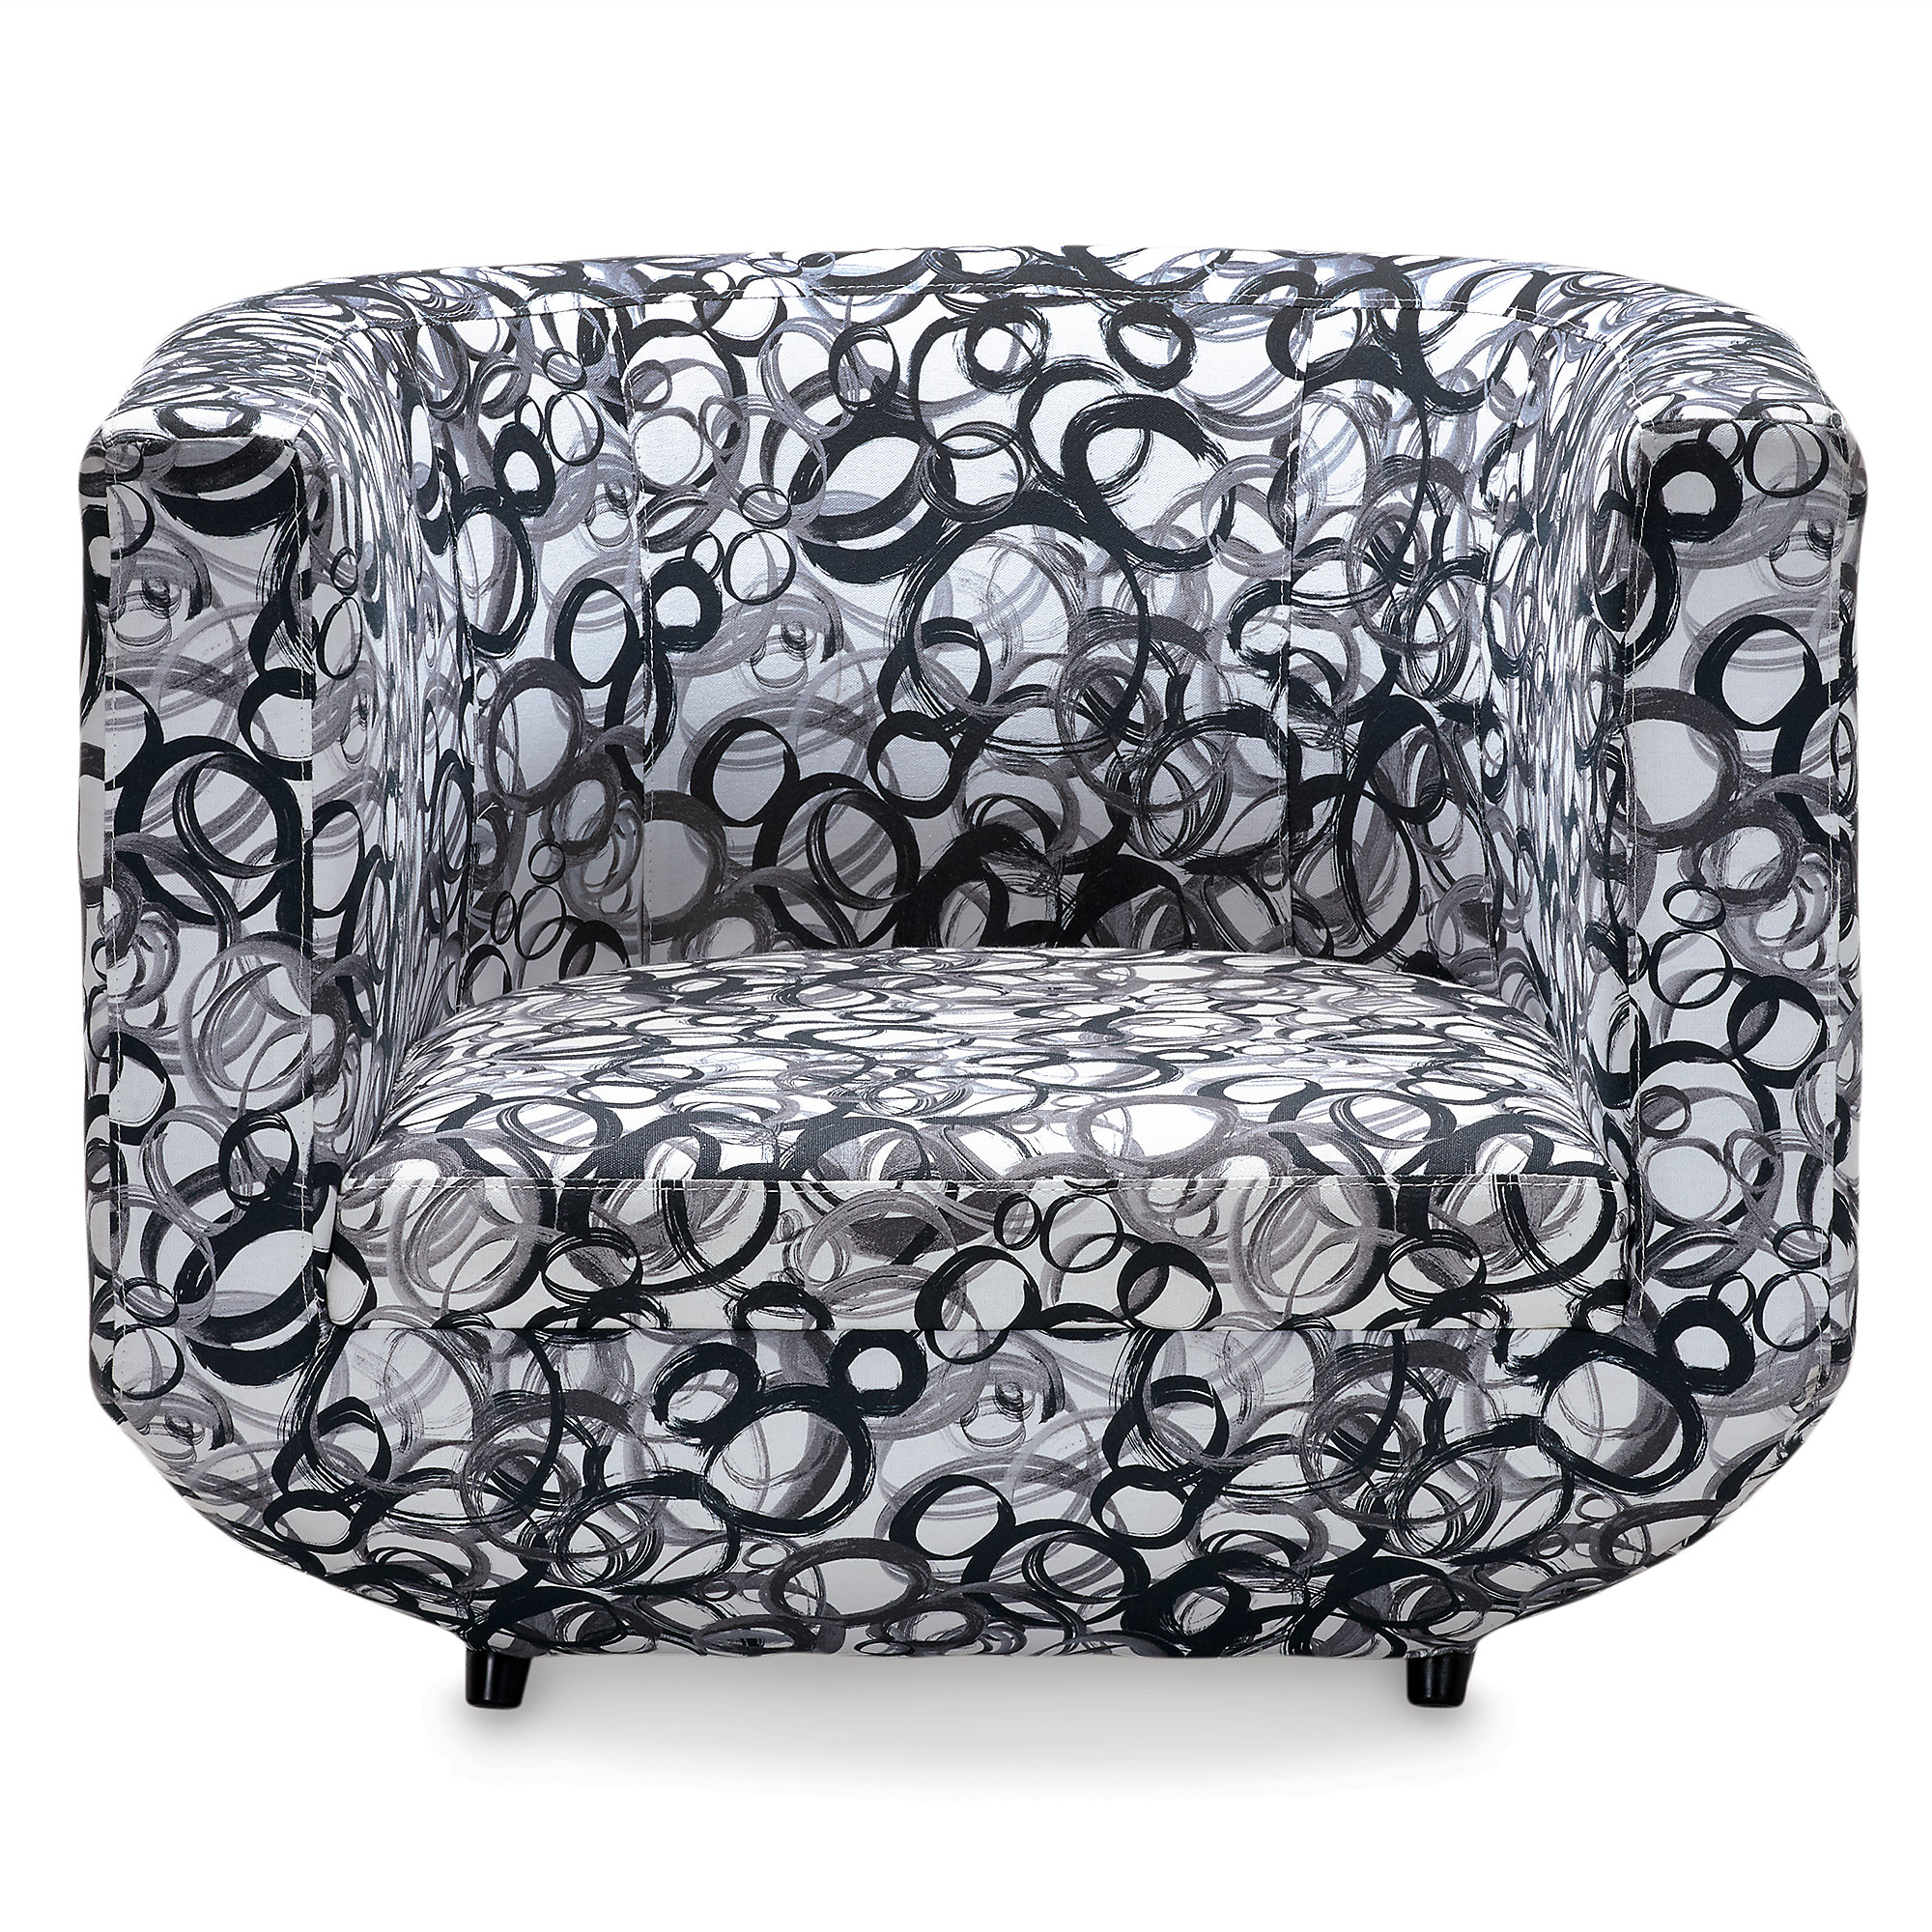 Thumbnail Image Of Mickey Mouse Having A Ball Chair By Ethan Allen # 1